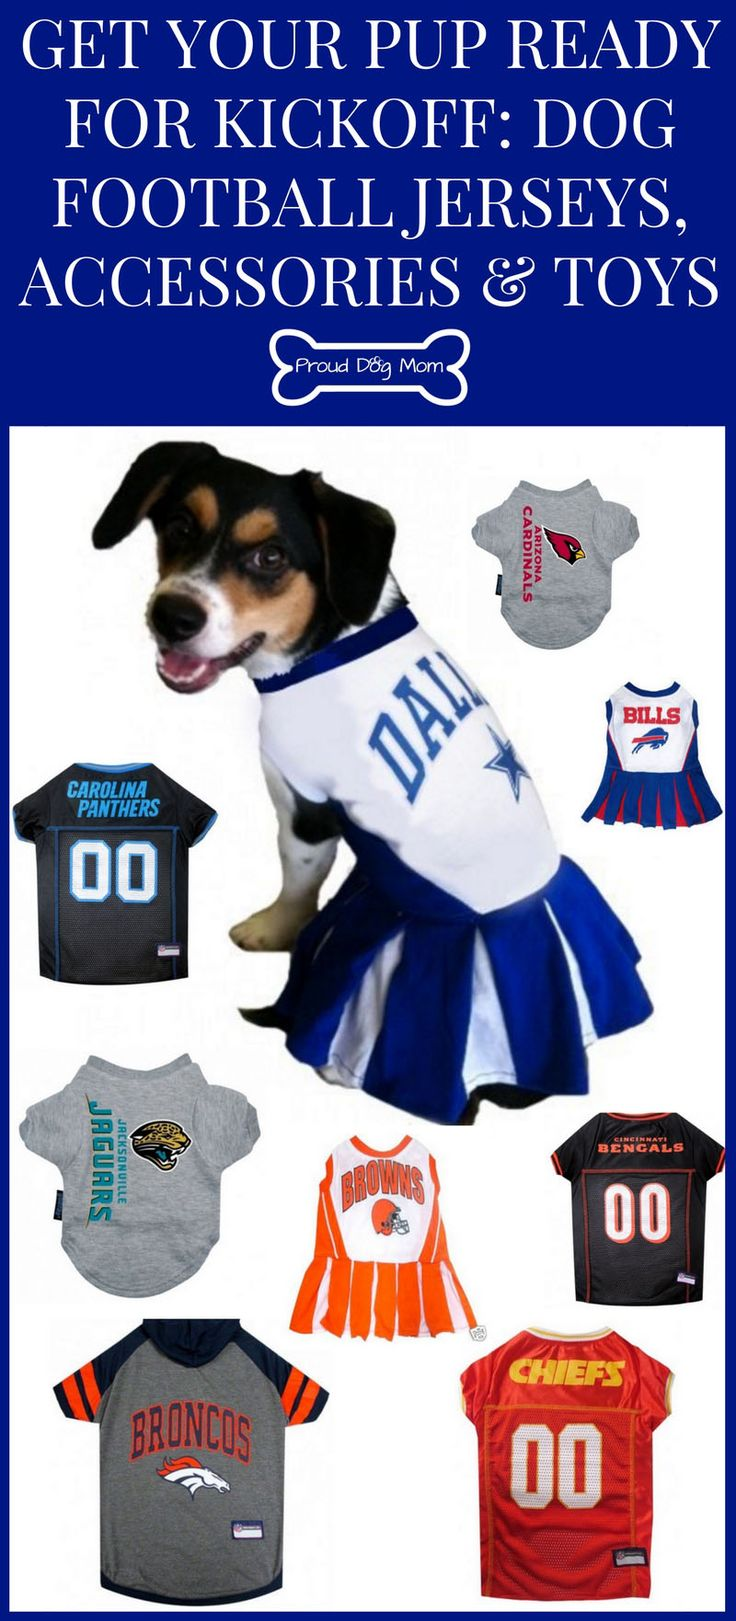 Get Your Pup Ready For Kickoff: Dog Football Jerseys, Accessories, and Toys | Dog Products |